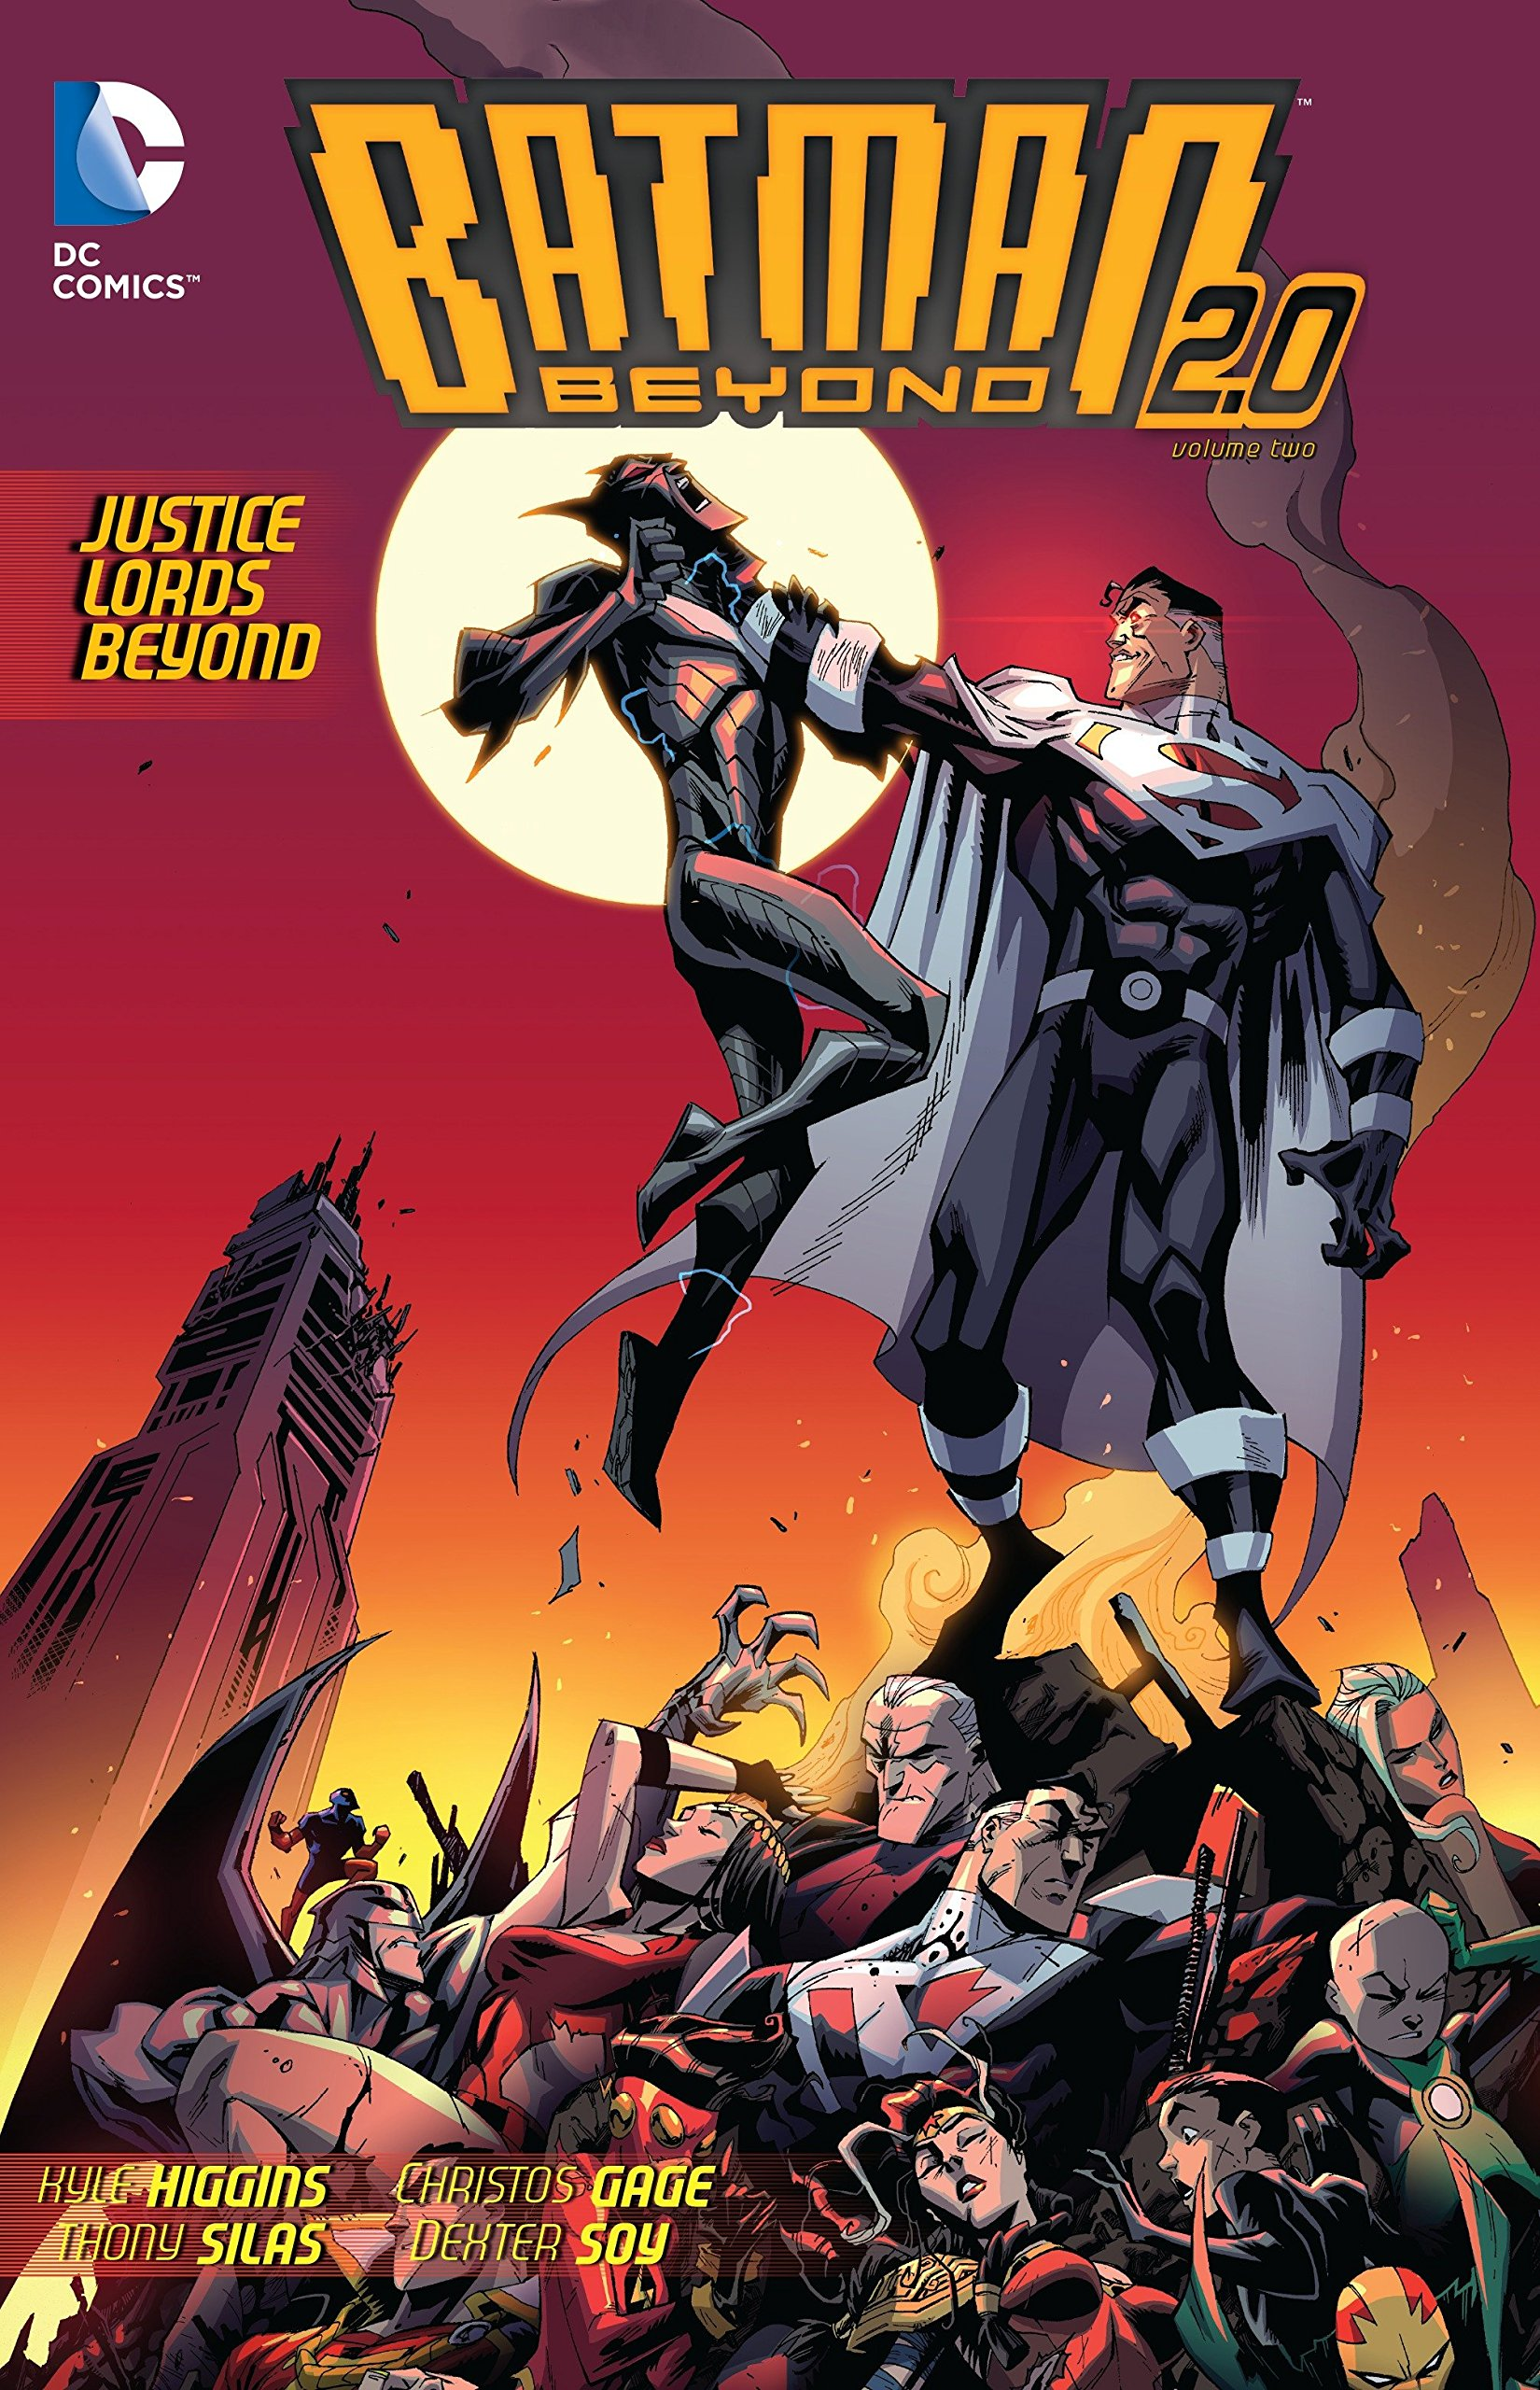 Batman Beyond 2.0, Vol. 2: Justice Lords Beyond by Kyle Higgins, Christos Gage, Thony Silas